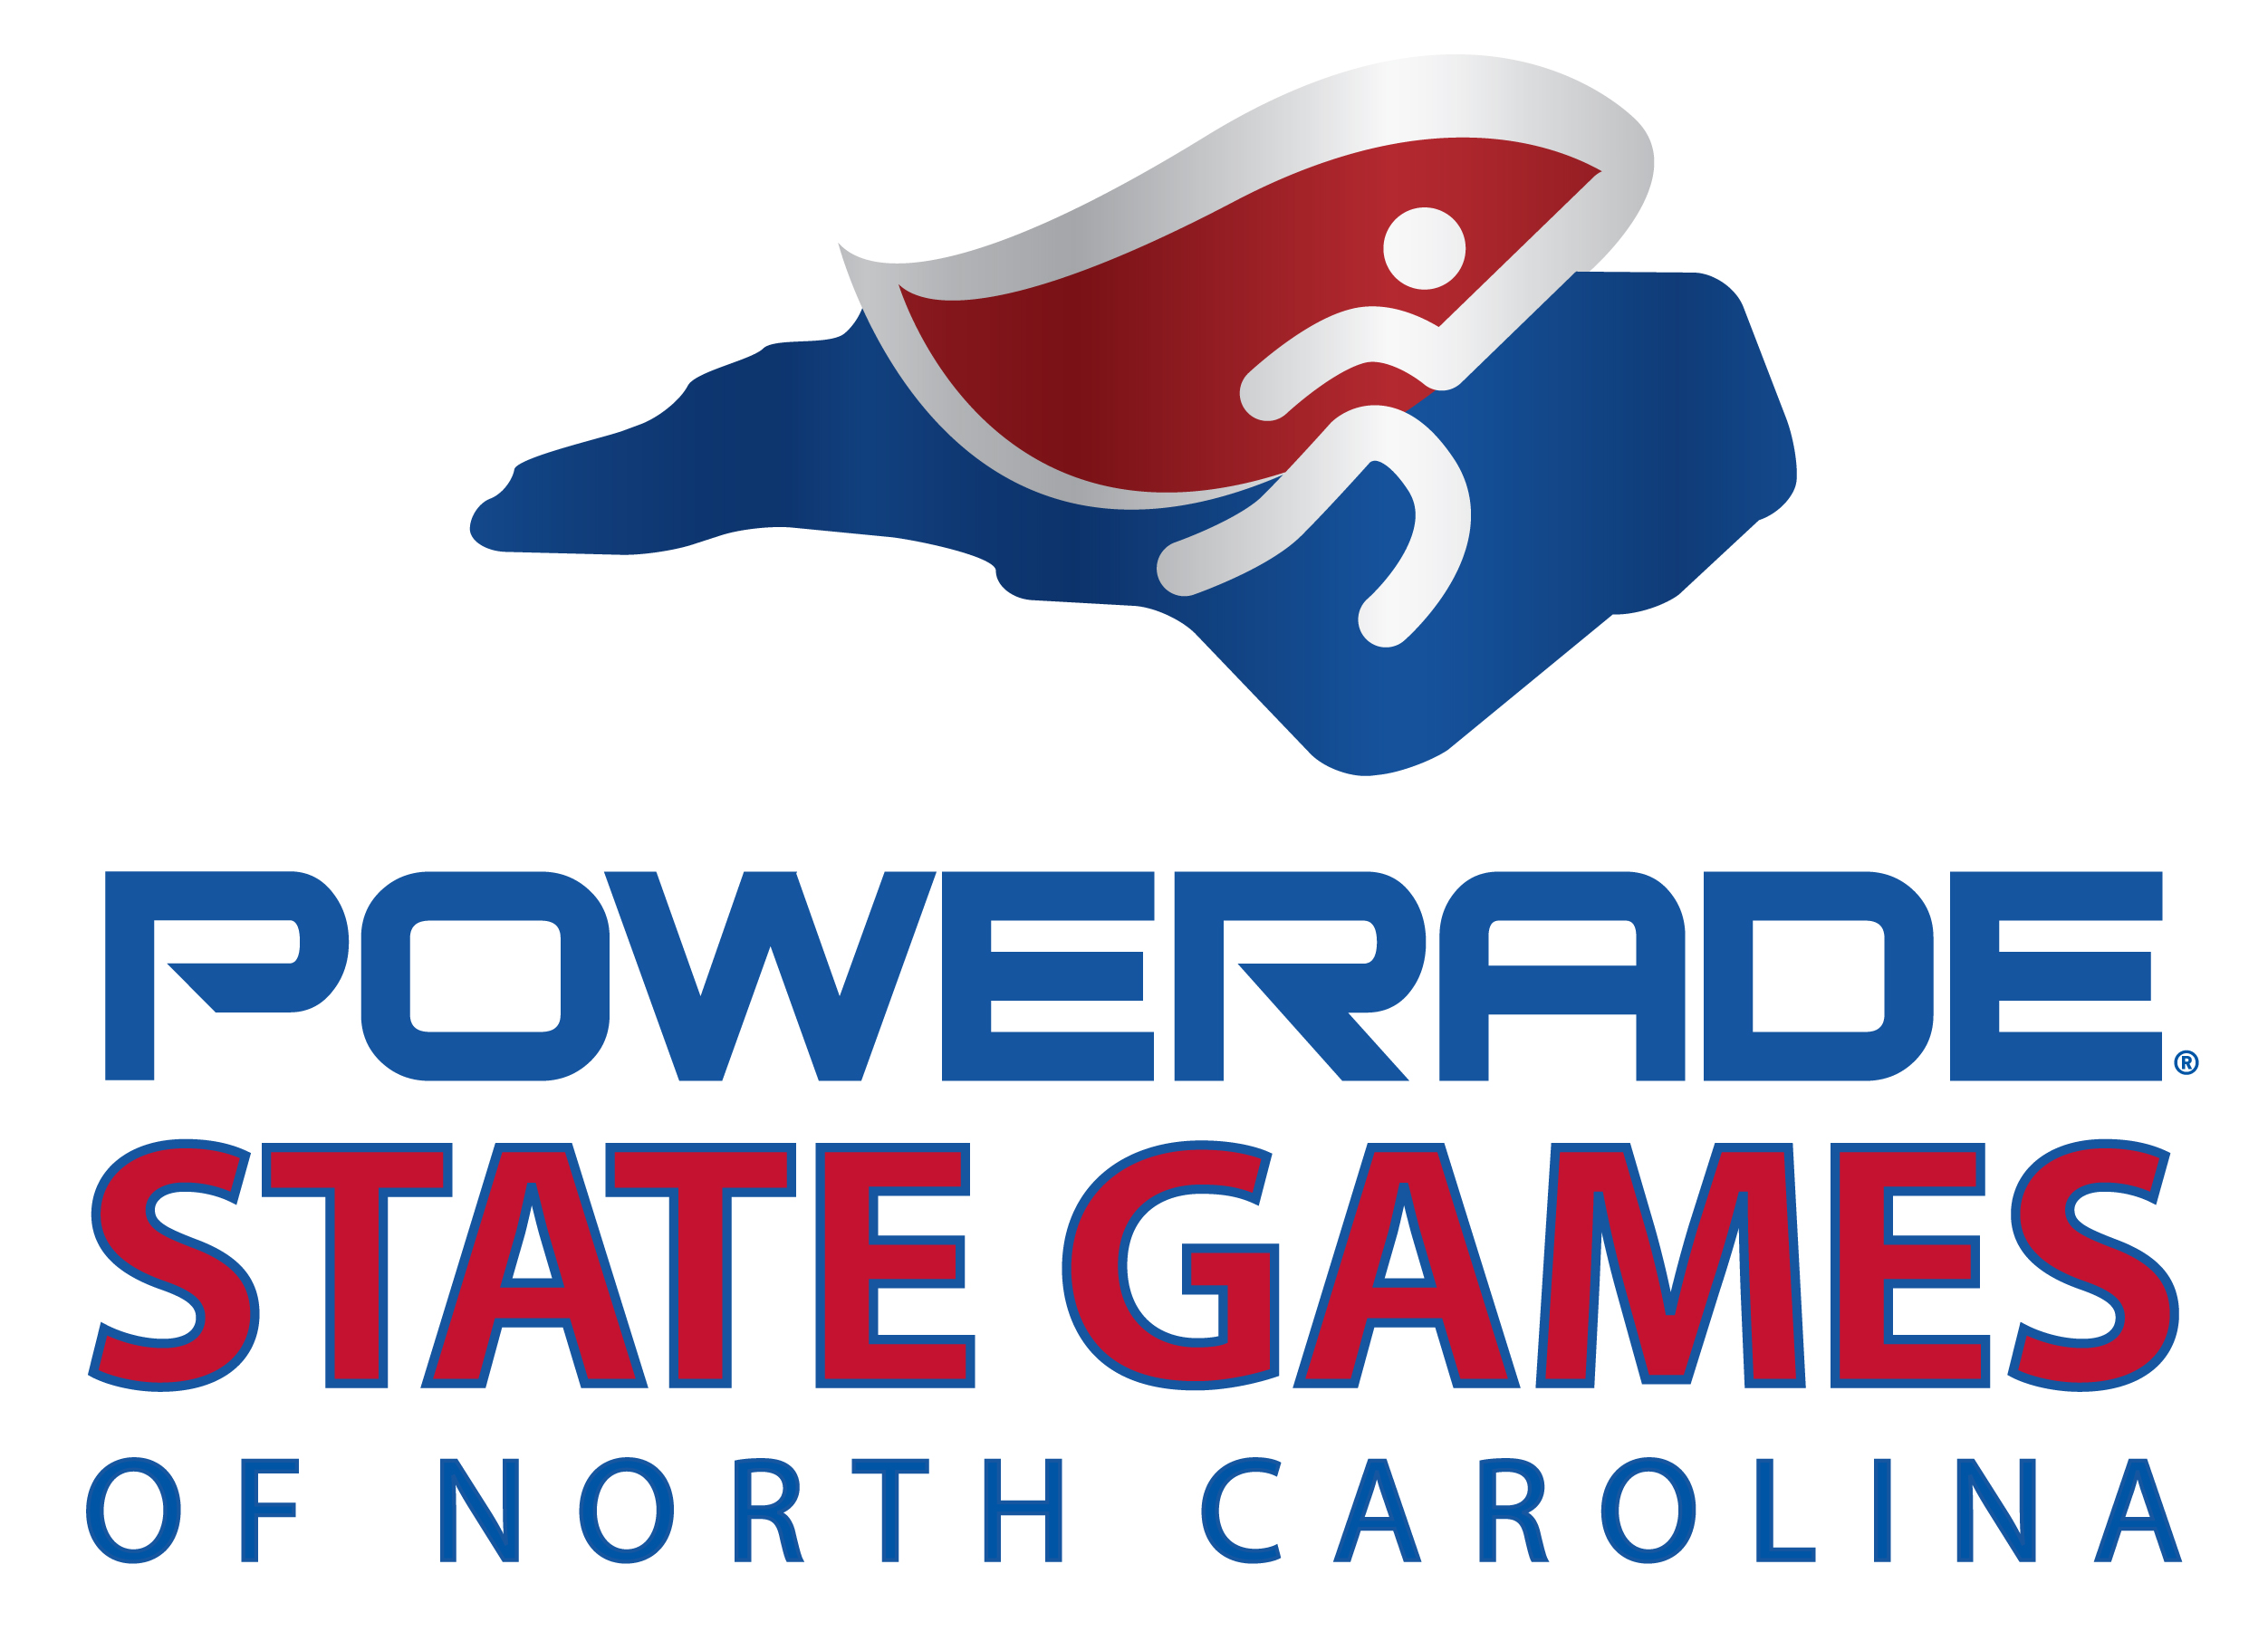 Powerade State Games of NC